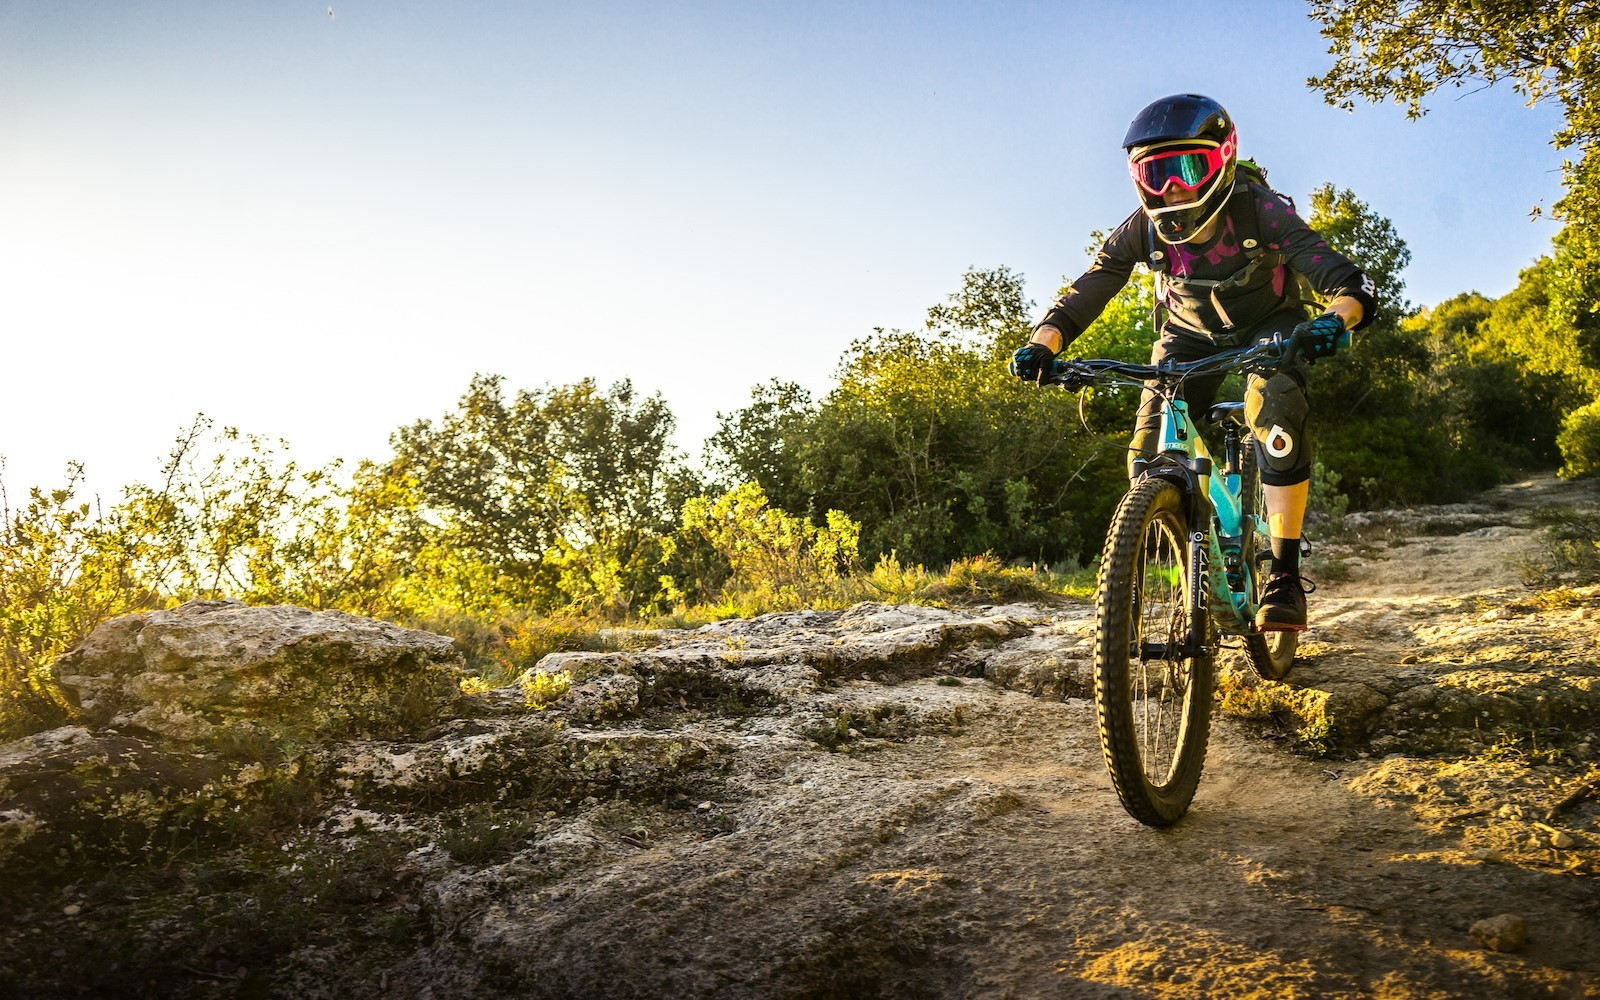 Mountain Road Bike Wallpapers: Mountain Bikes, Women With Bikes, Helmet, Bicycle